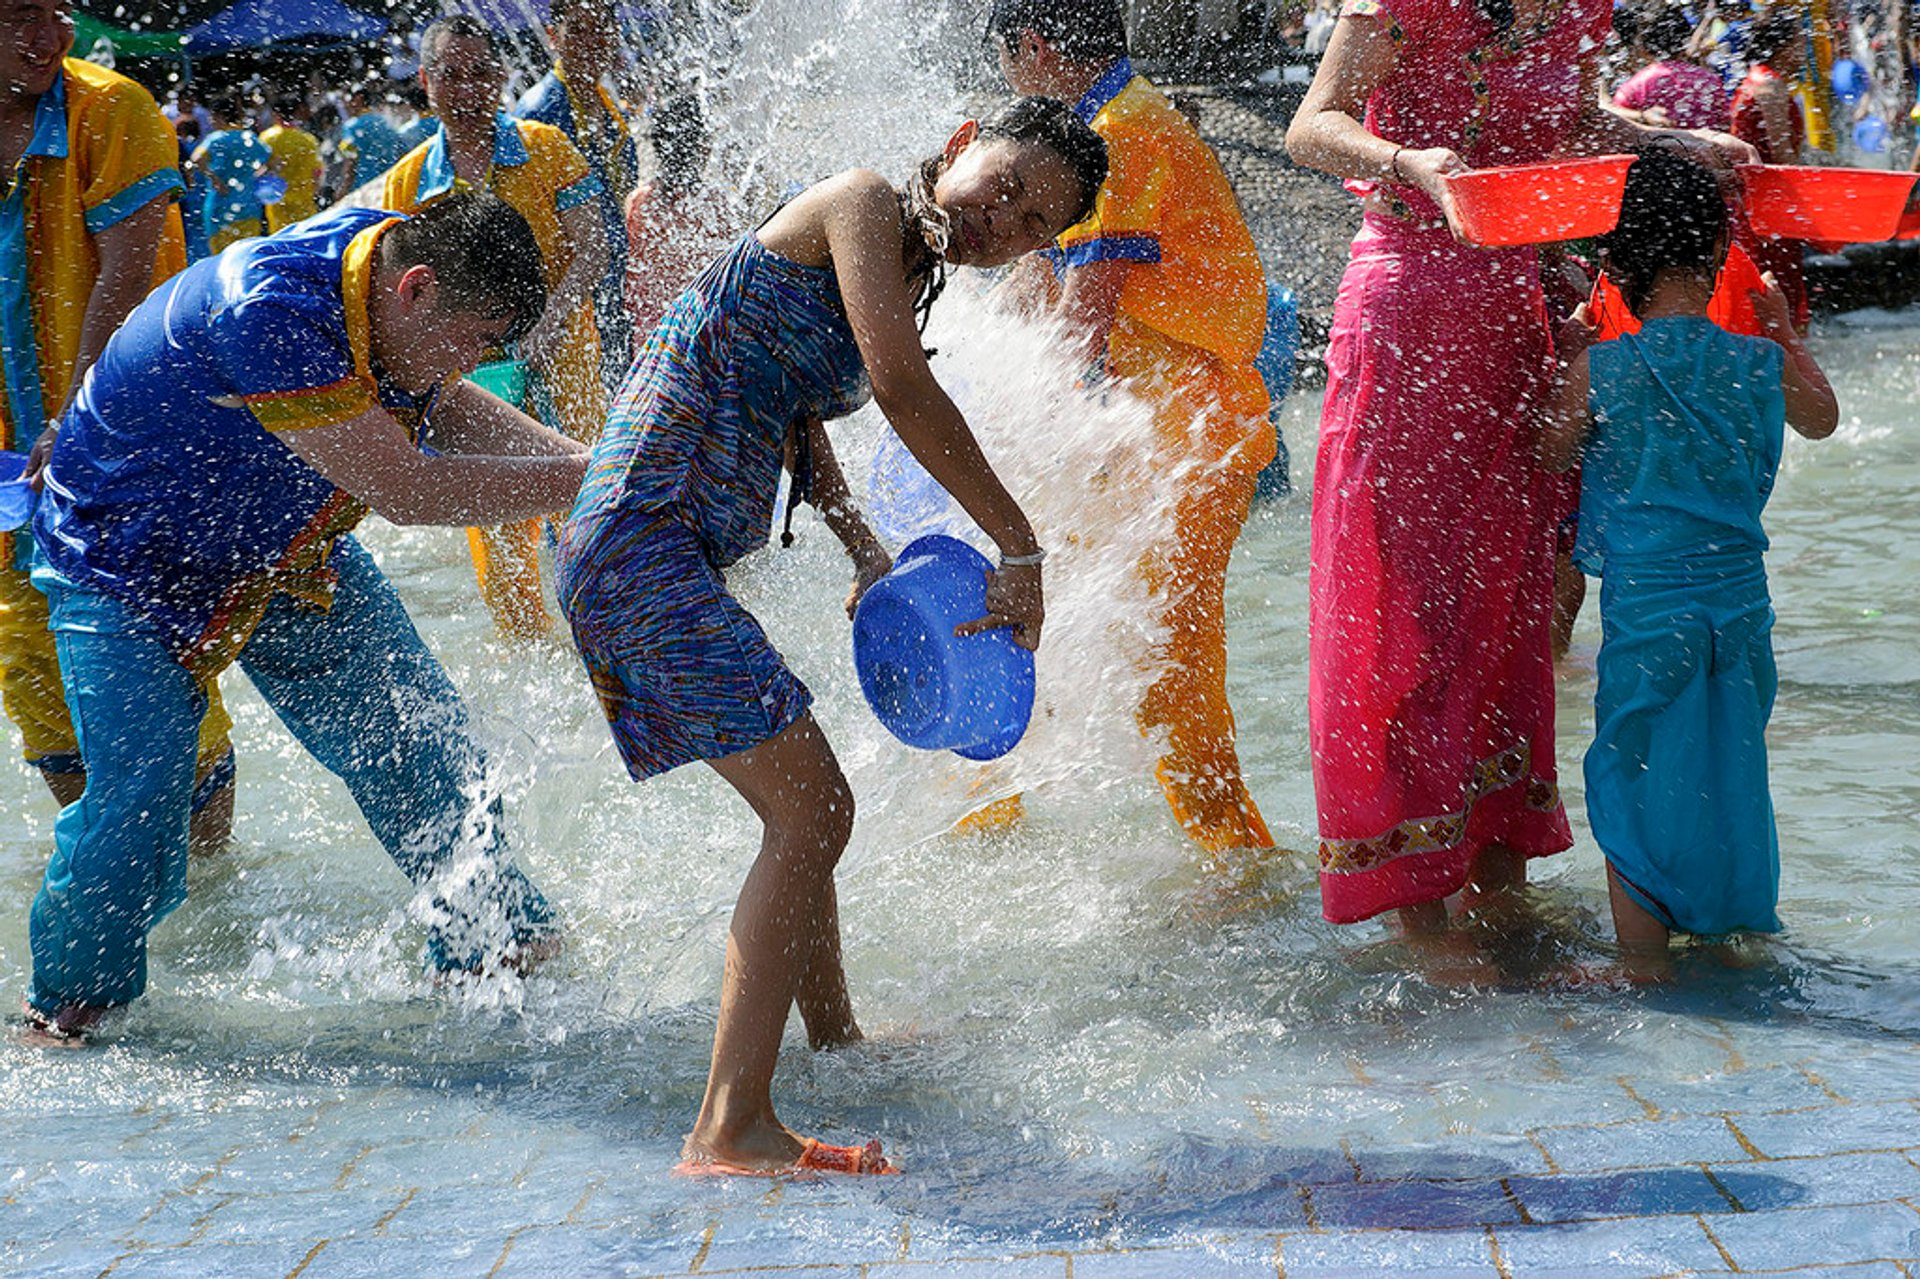 Best time for Dai Water Splashing Festival in China 2019